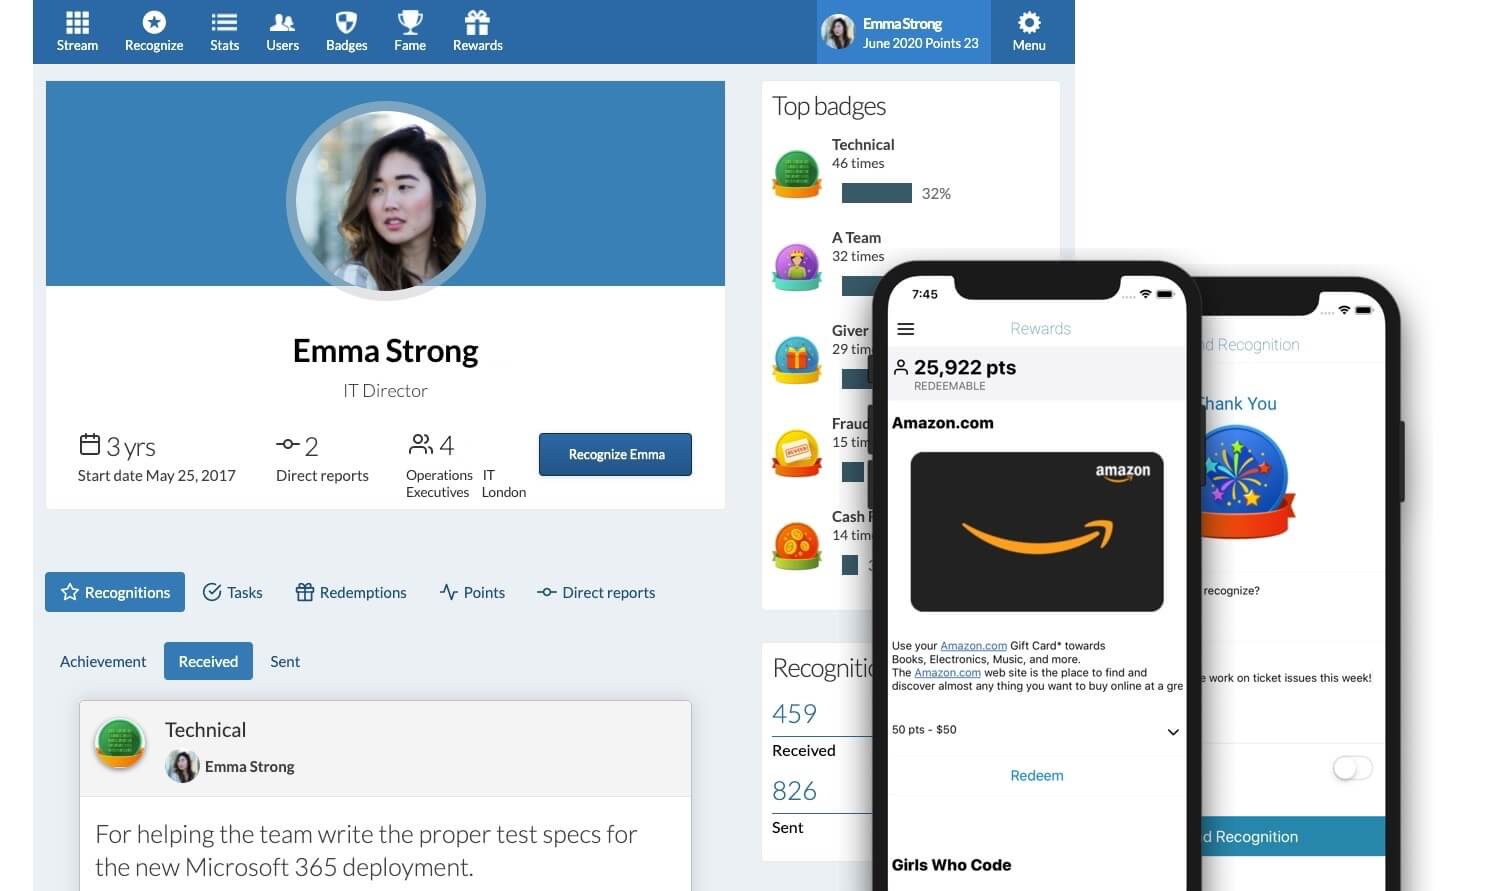 A screenshot of Recognize where employees can give appreication to each other and see their own profile of points, recognitions, and rewards.